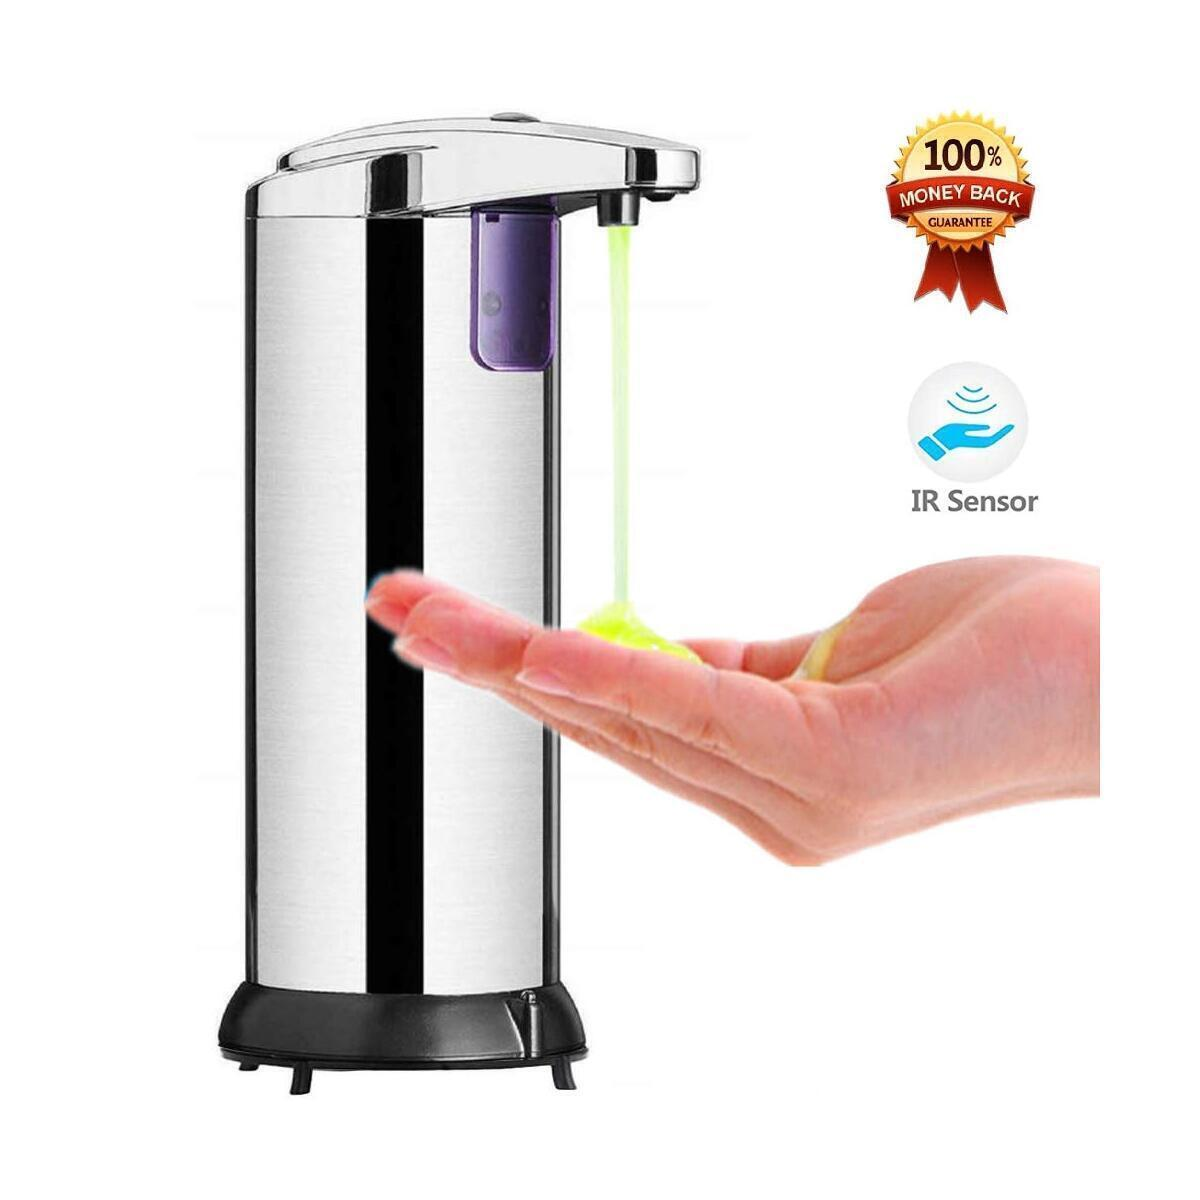 ibnBAQAR Automatic Hand Soap Dispenser, Touchless High Capacity, touchless, Infrared Motion Sensor Waterproof Base Adjustable Switchs Suitable for Bathroom, Kitchen, Hotel, and Restaurant